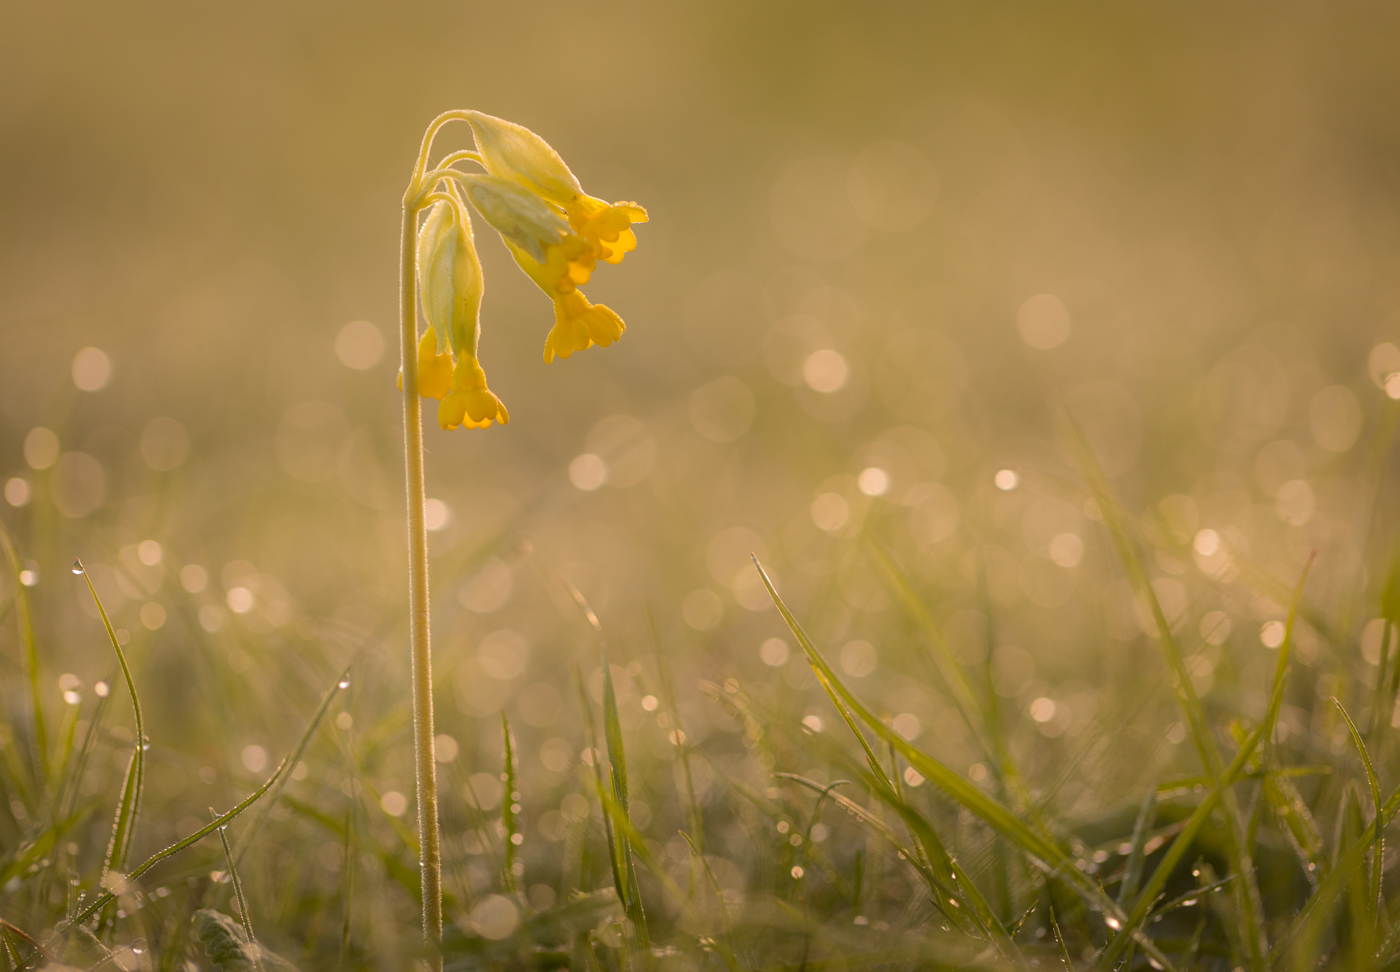 Cowslip (Primula veris) by Jason Boswell - 20